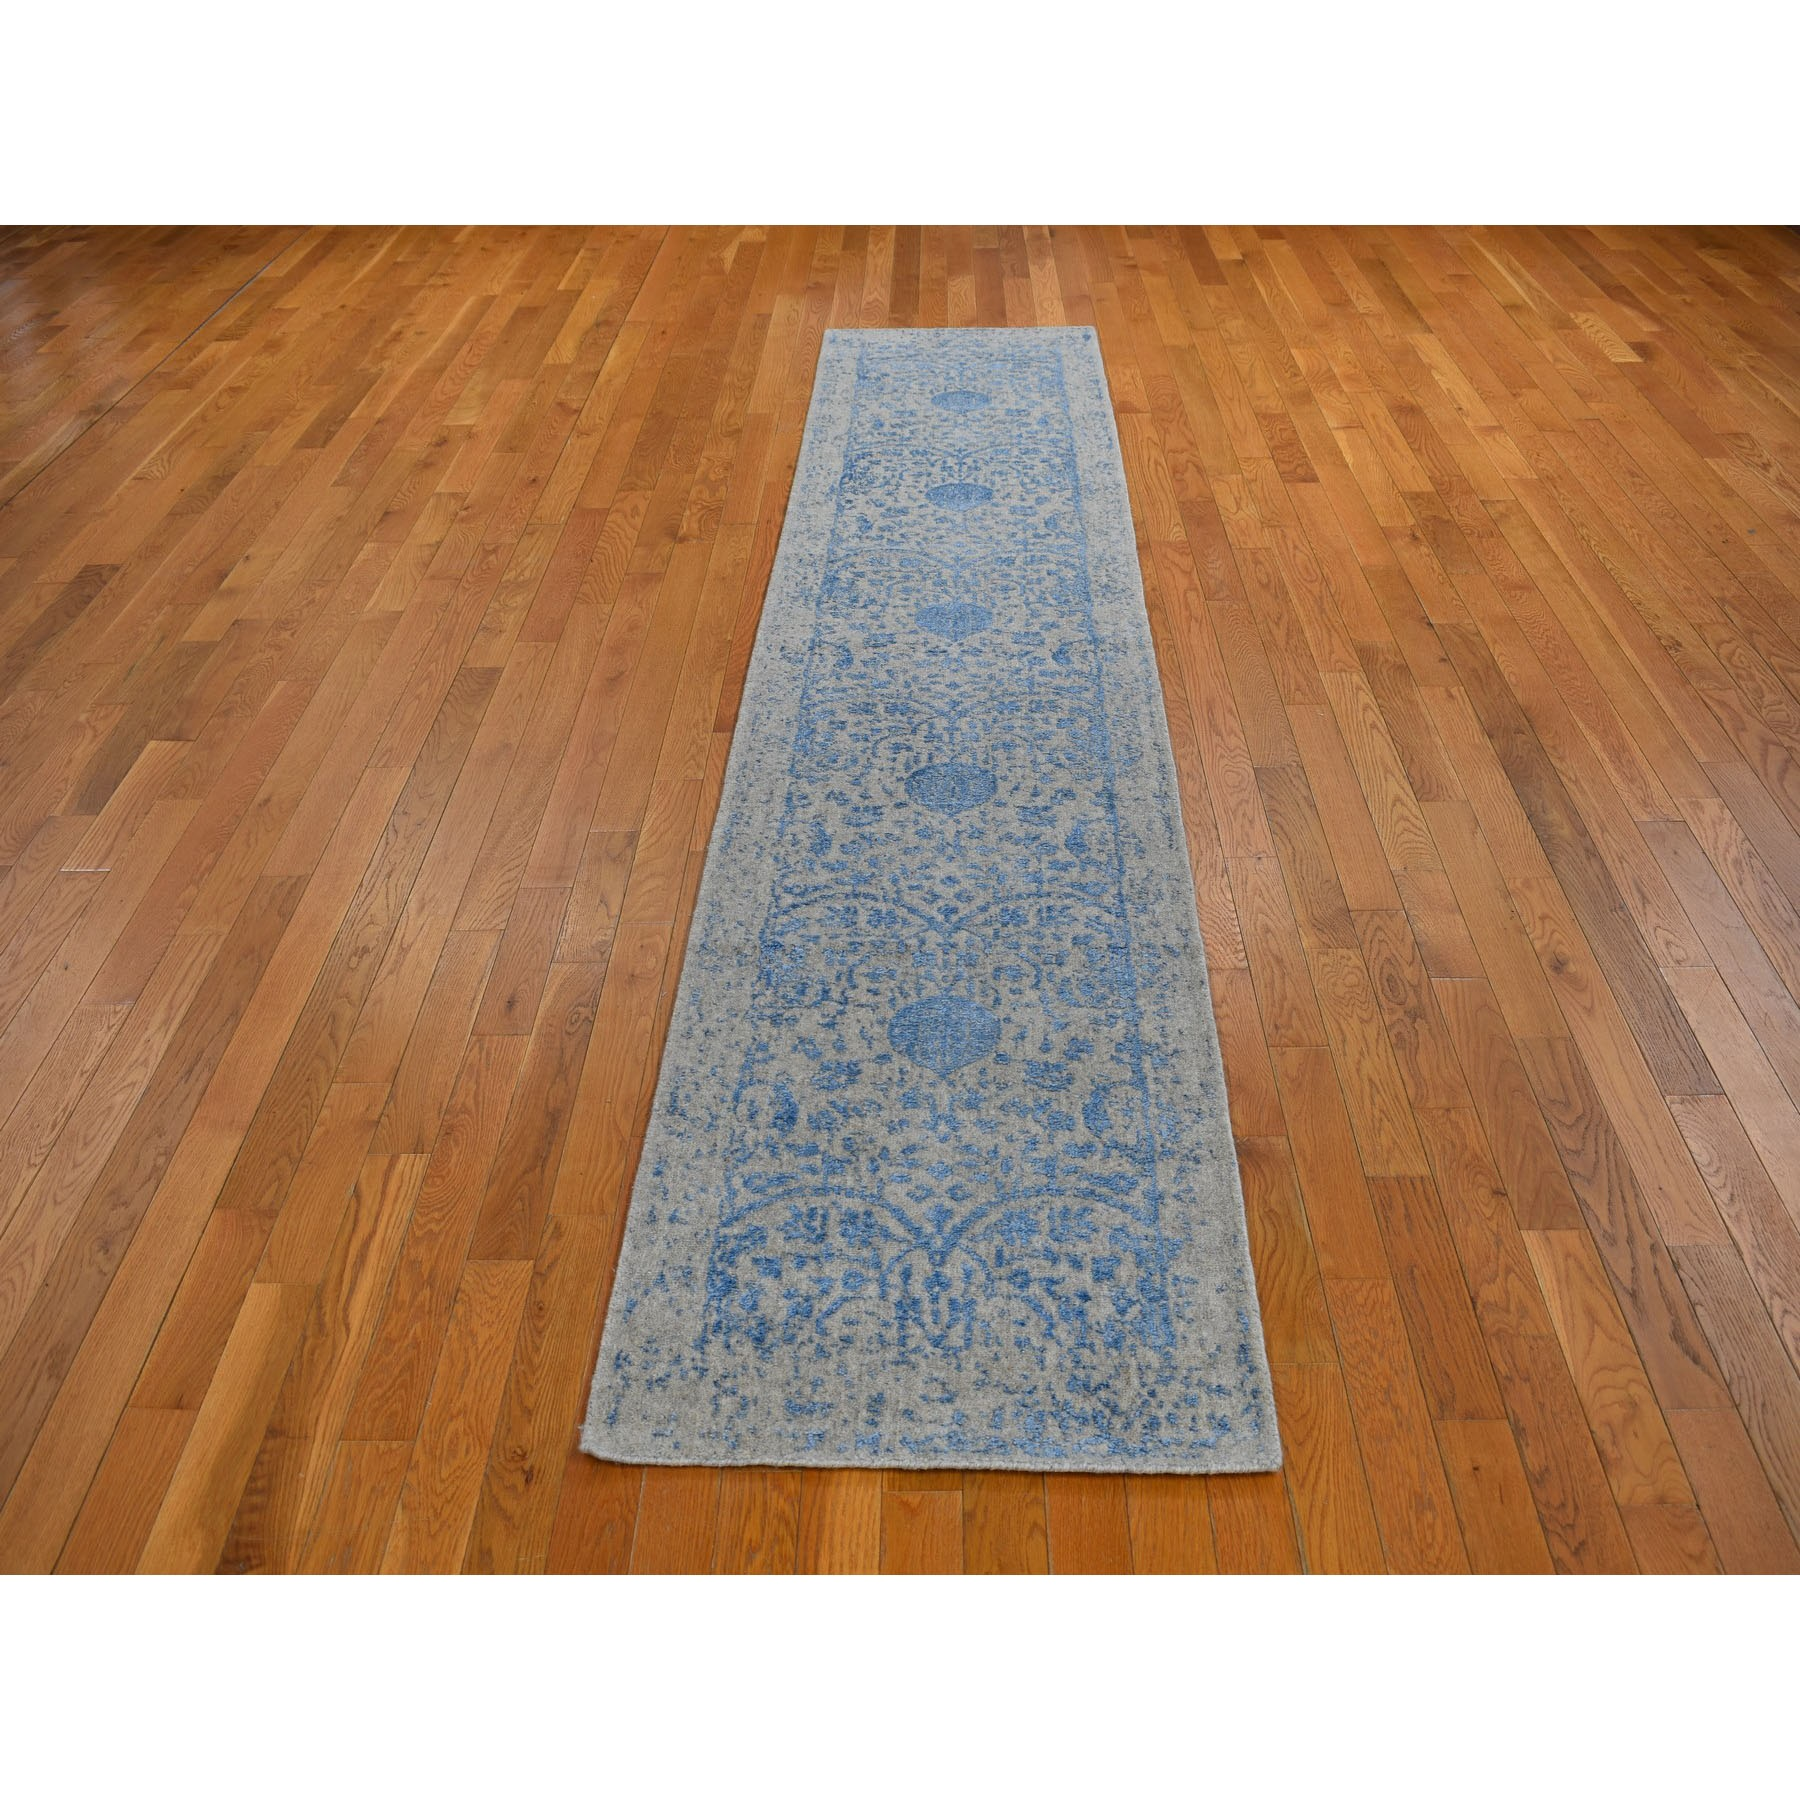 Modern-and-Contemporary-Hand-Loomed-Rug-245850